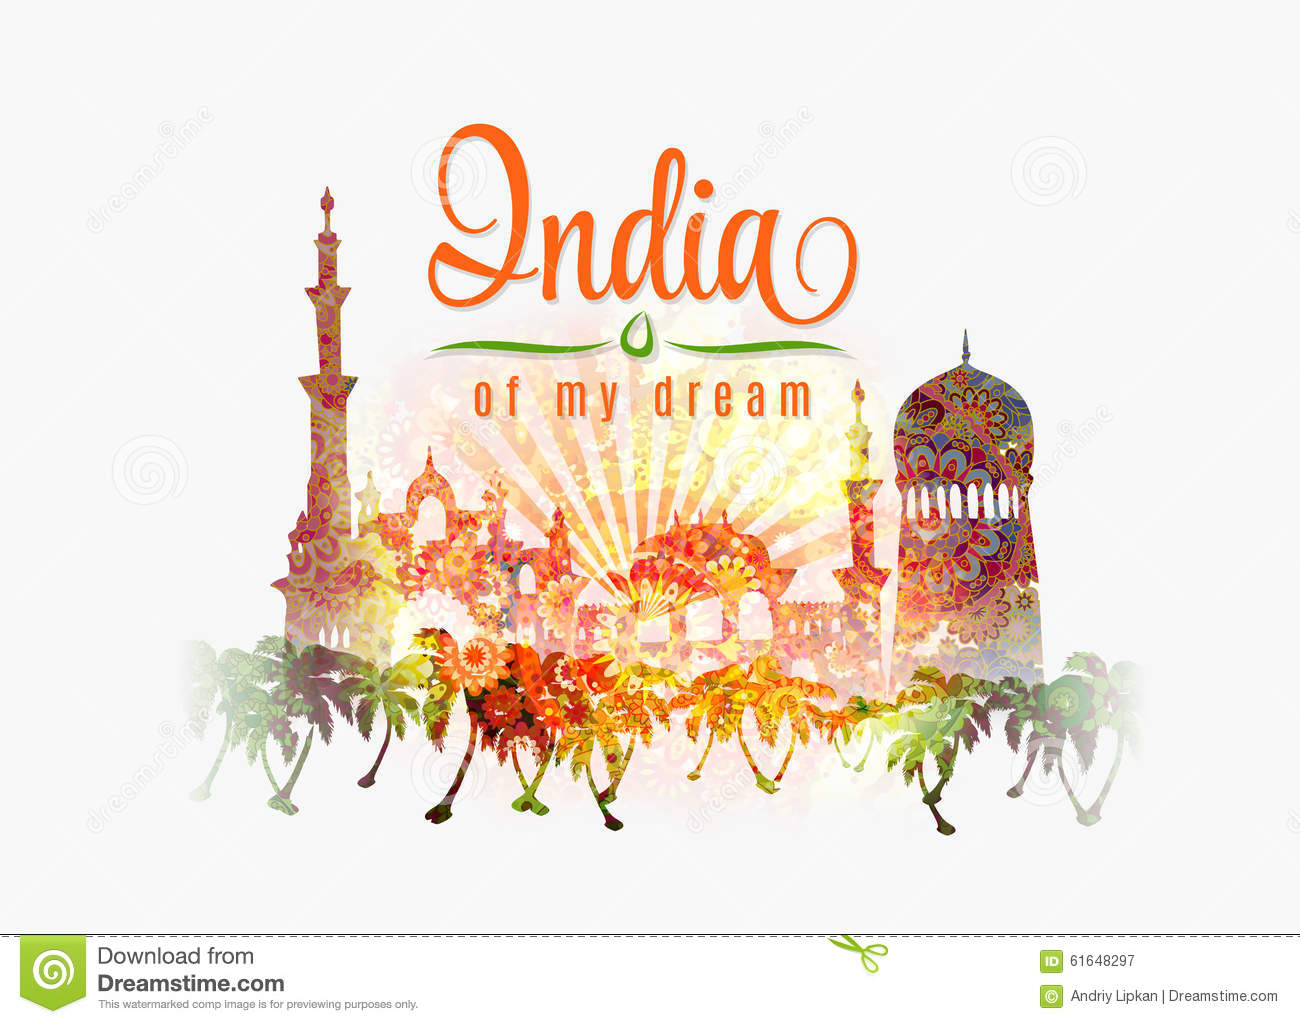 my dream india in hindi Slogan on india of my dreams in hindi we also have slogan on india of my dreams in hindi quotes and sayings related to slogan on india of my dreams in hindi.